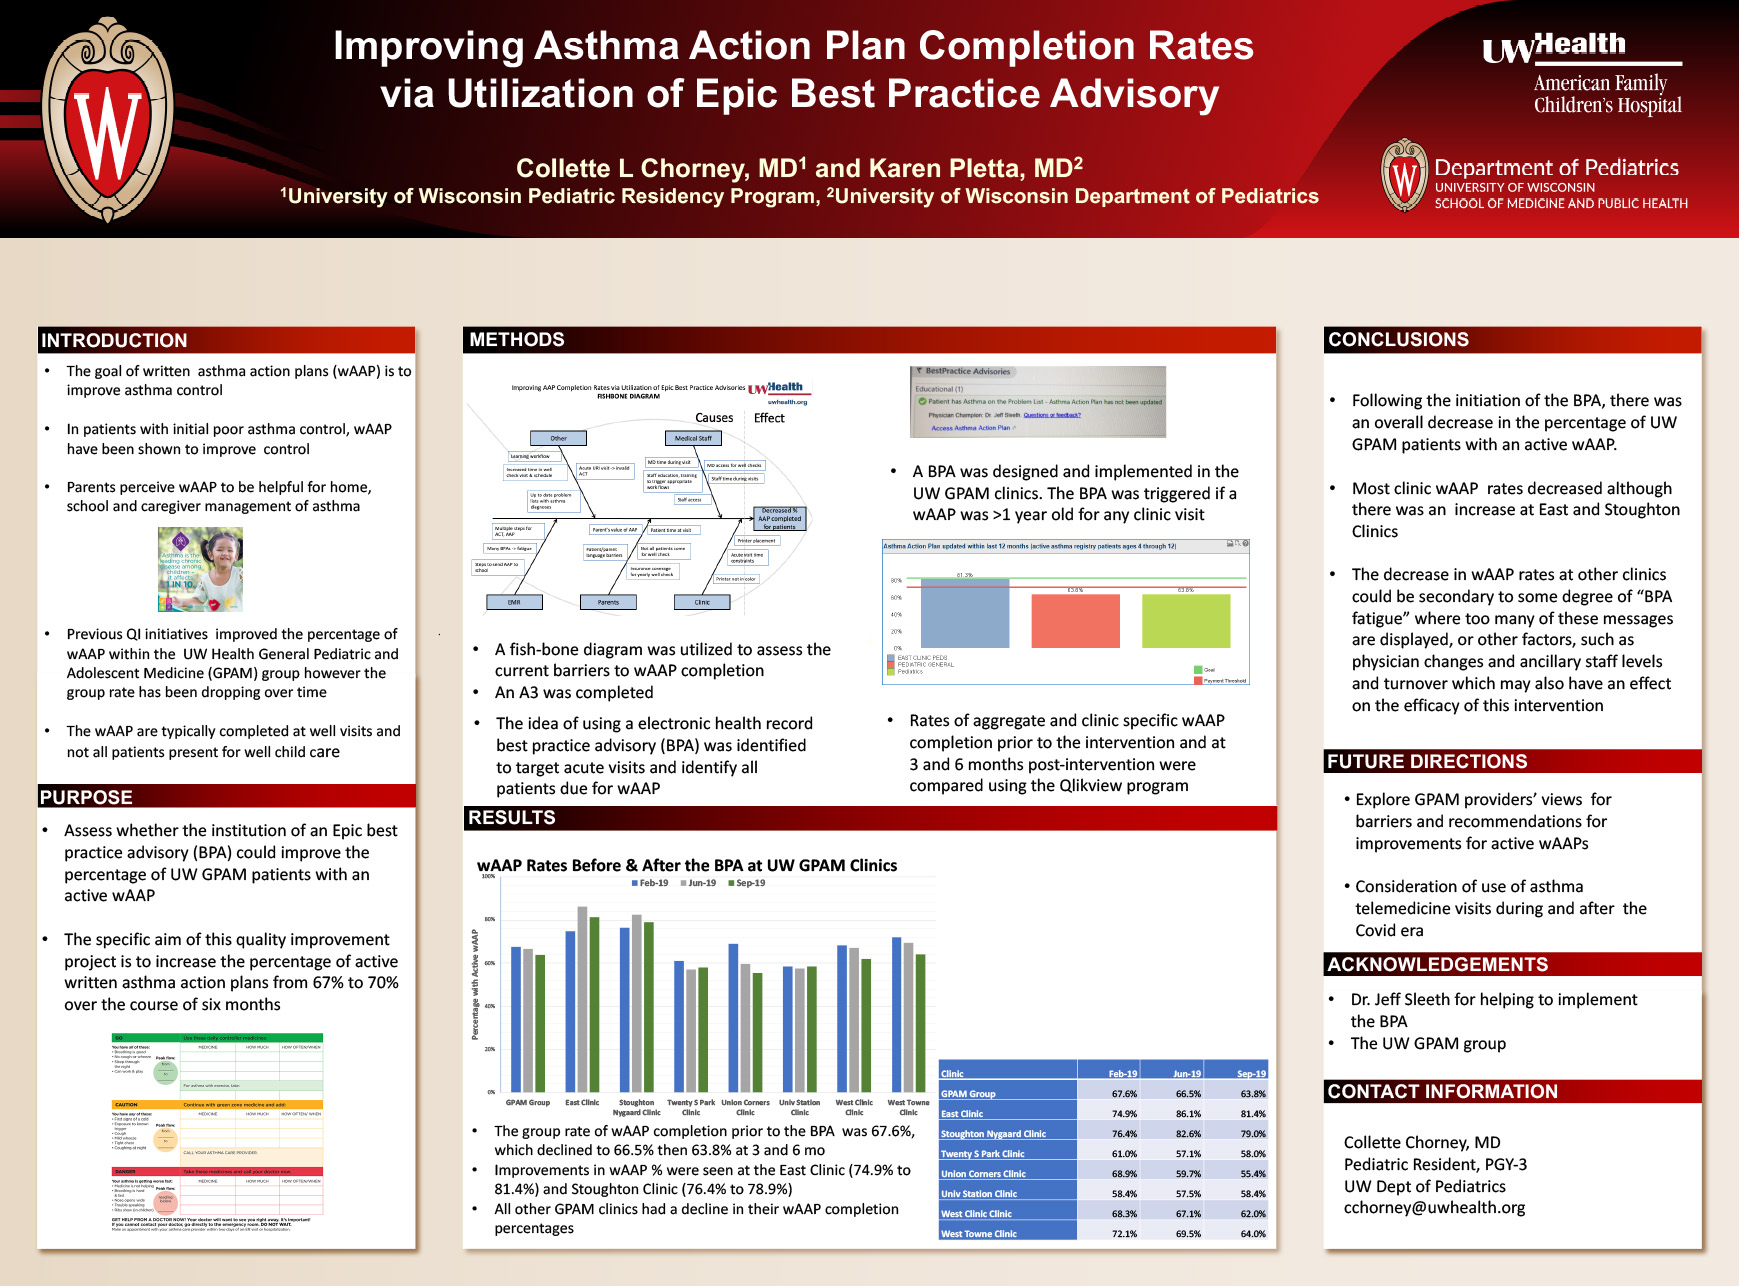 ImprovingAsthma Action Plan Completion Rates via Utilization of Epic Best Practice Advisory poster image